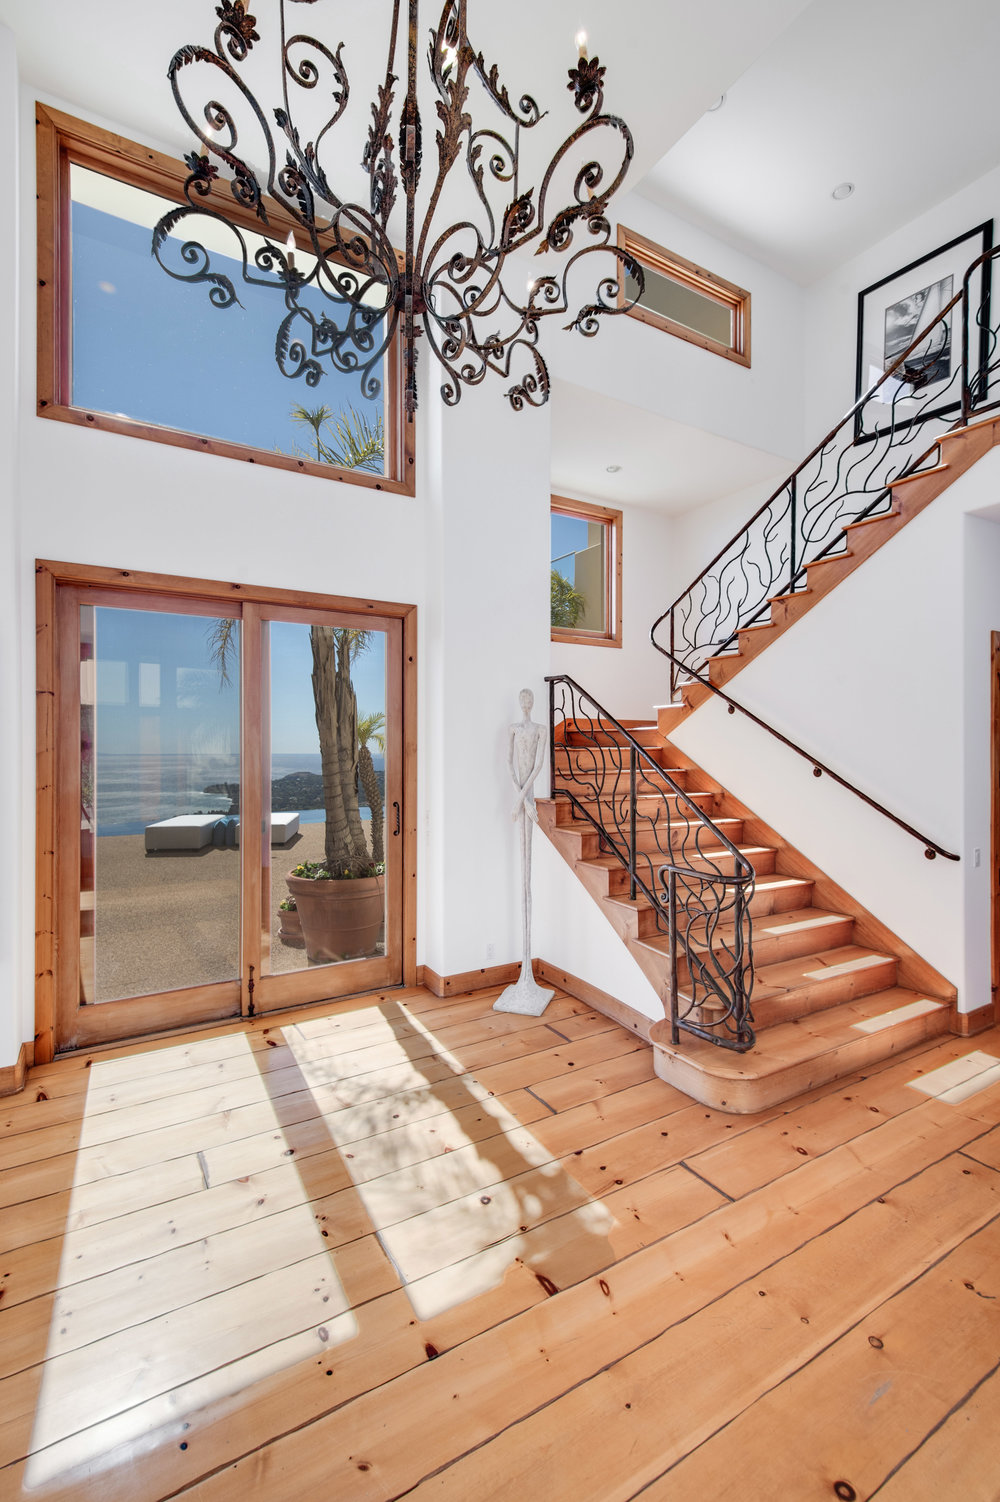 012 Stairs 27475 Latigo Bay View Drive For Sale Lease The Malibu Life Team Luxury Real Estate.jpg